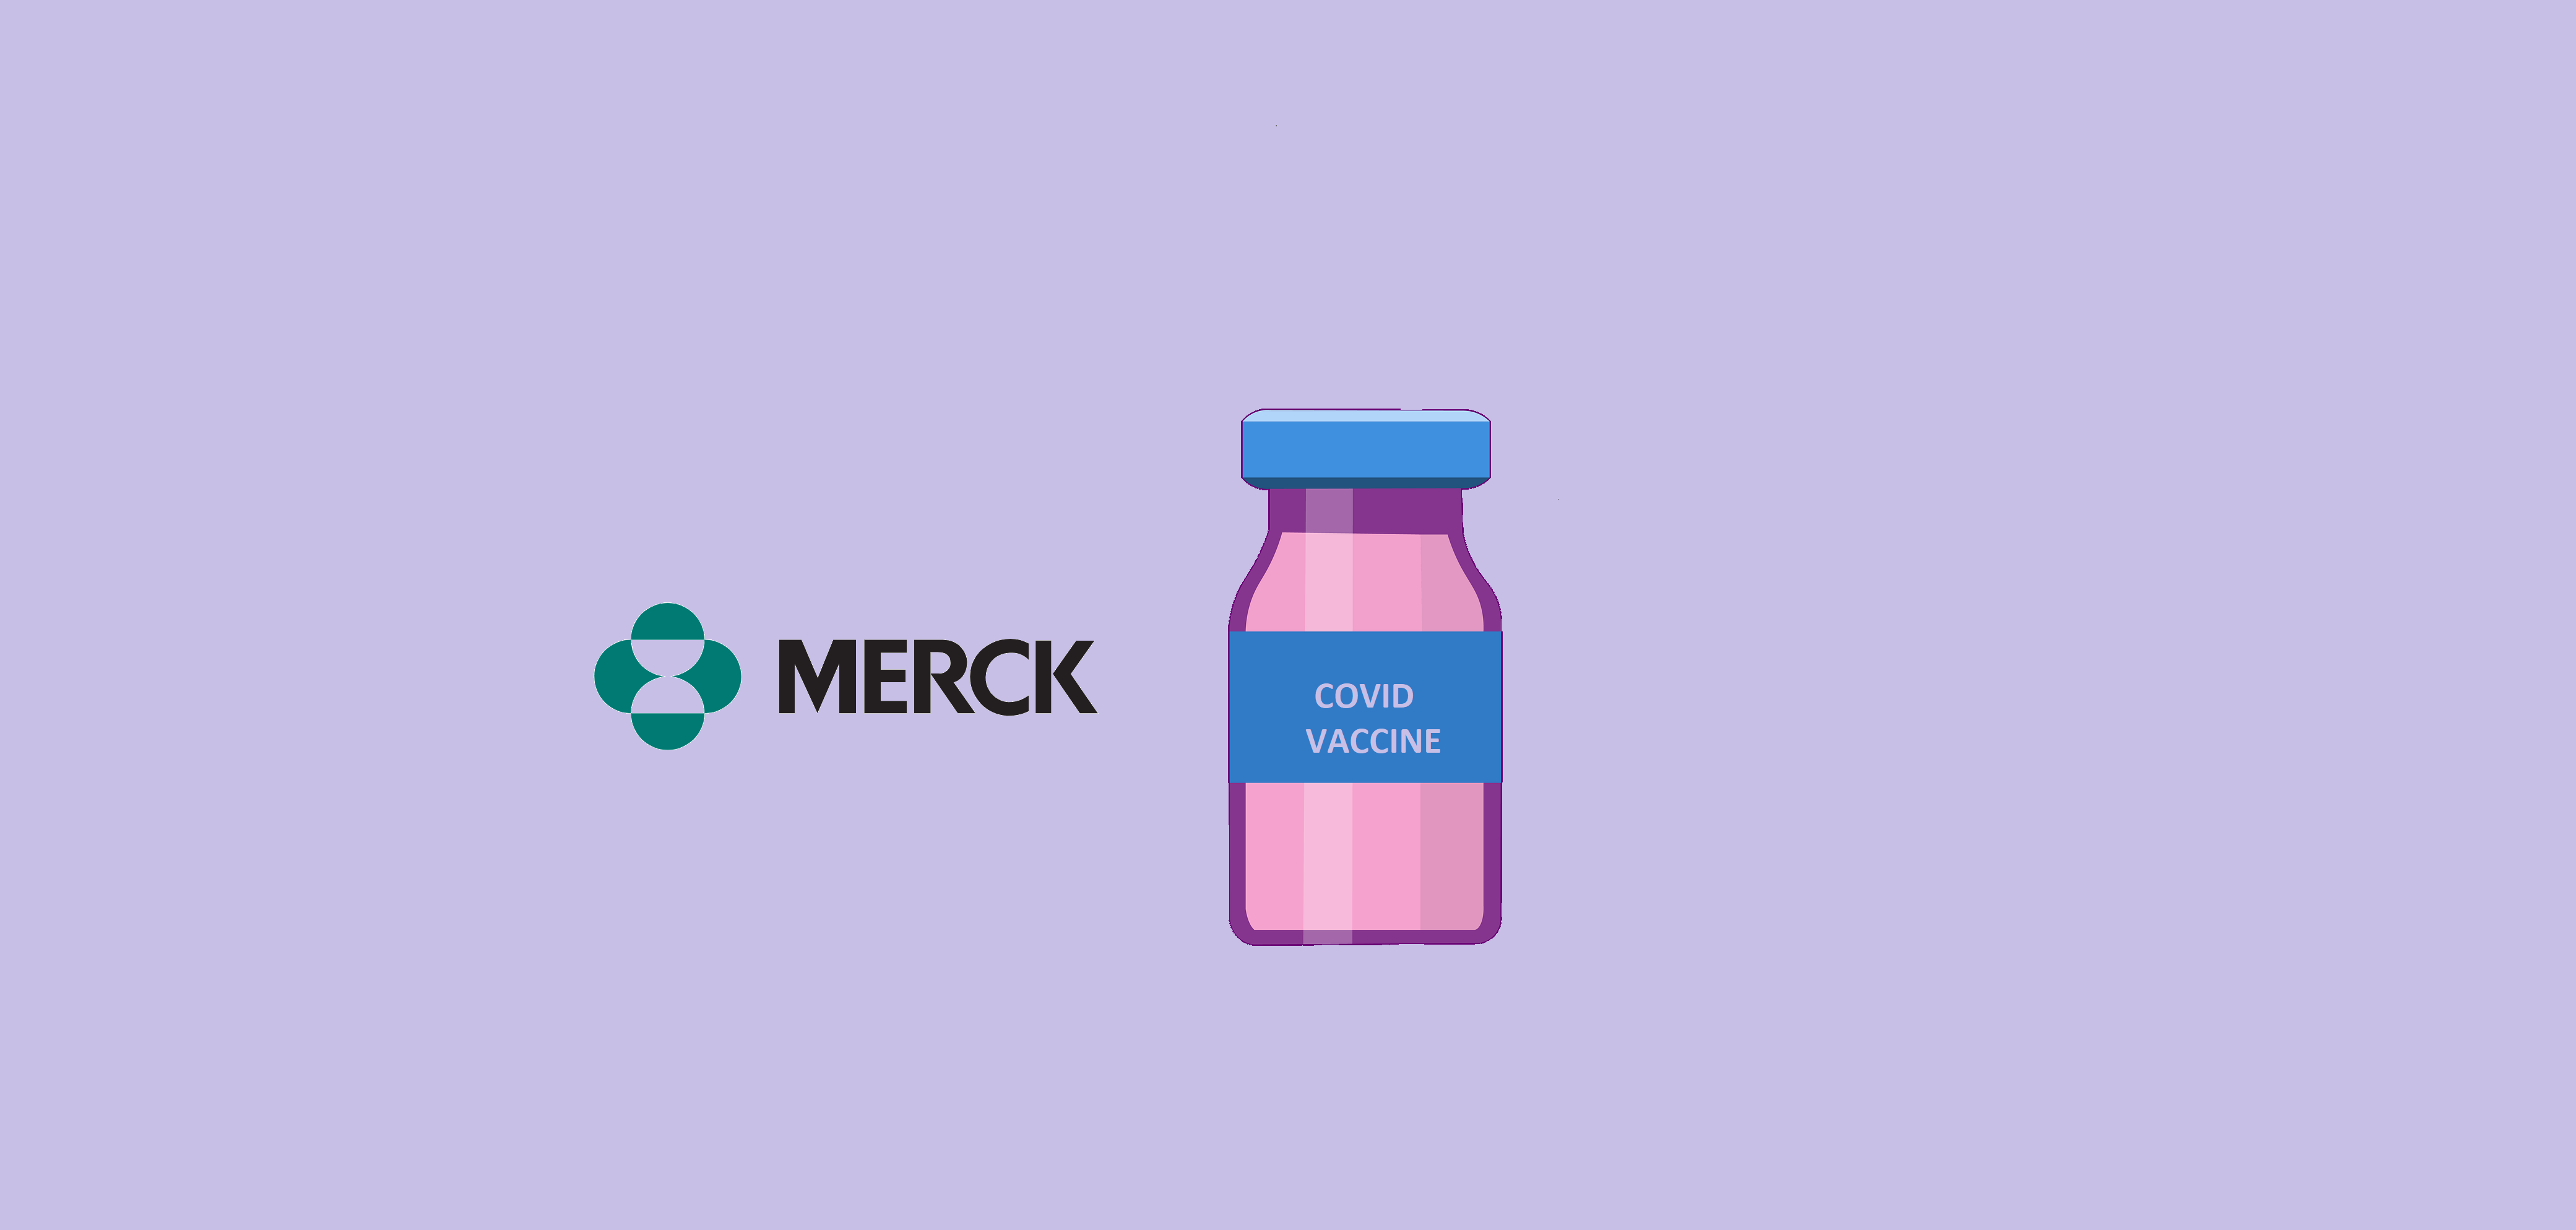 Merck Gives Up On Its COVID Vaccine After Data Shows No Immune Response